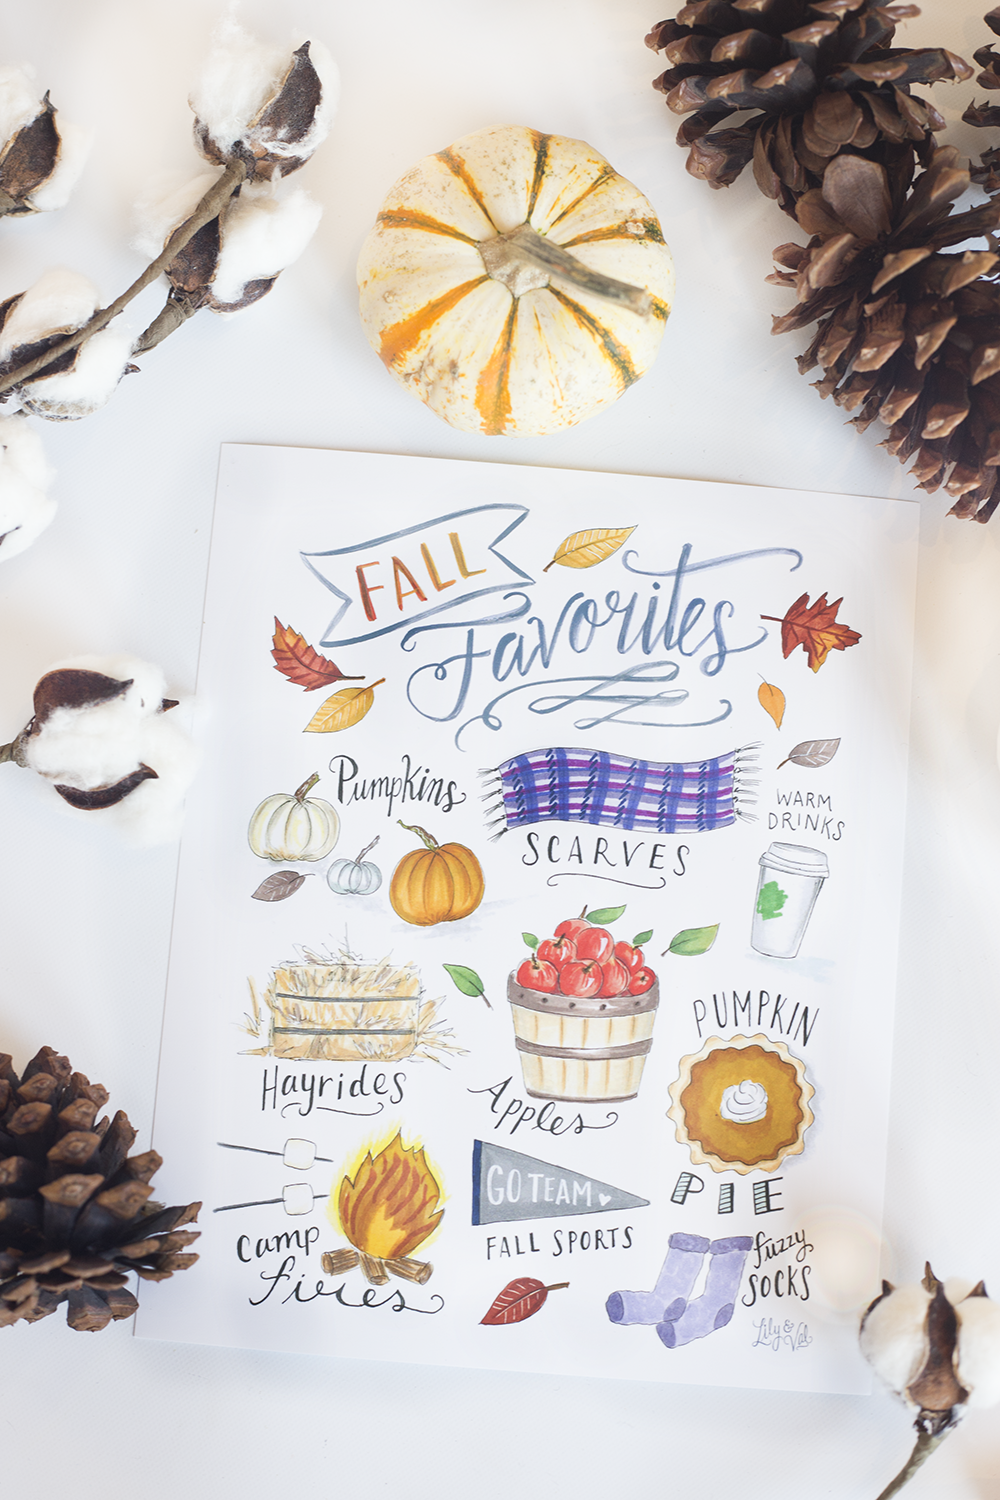 Need inspiration for your Friendsgiving this year? Click through to read our top five ideas to cozy up your celebration!